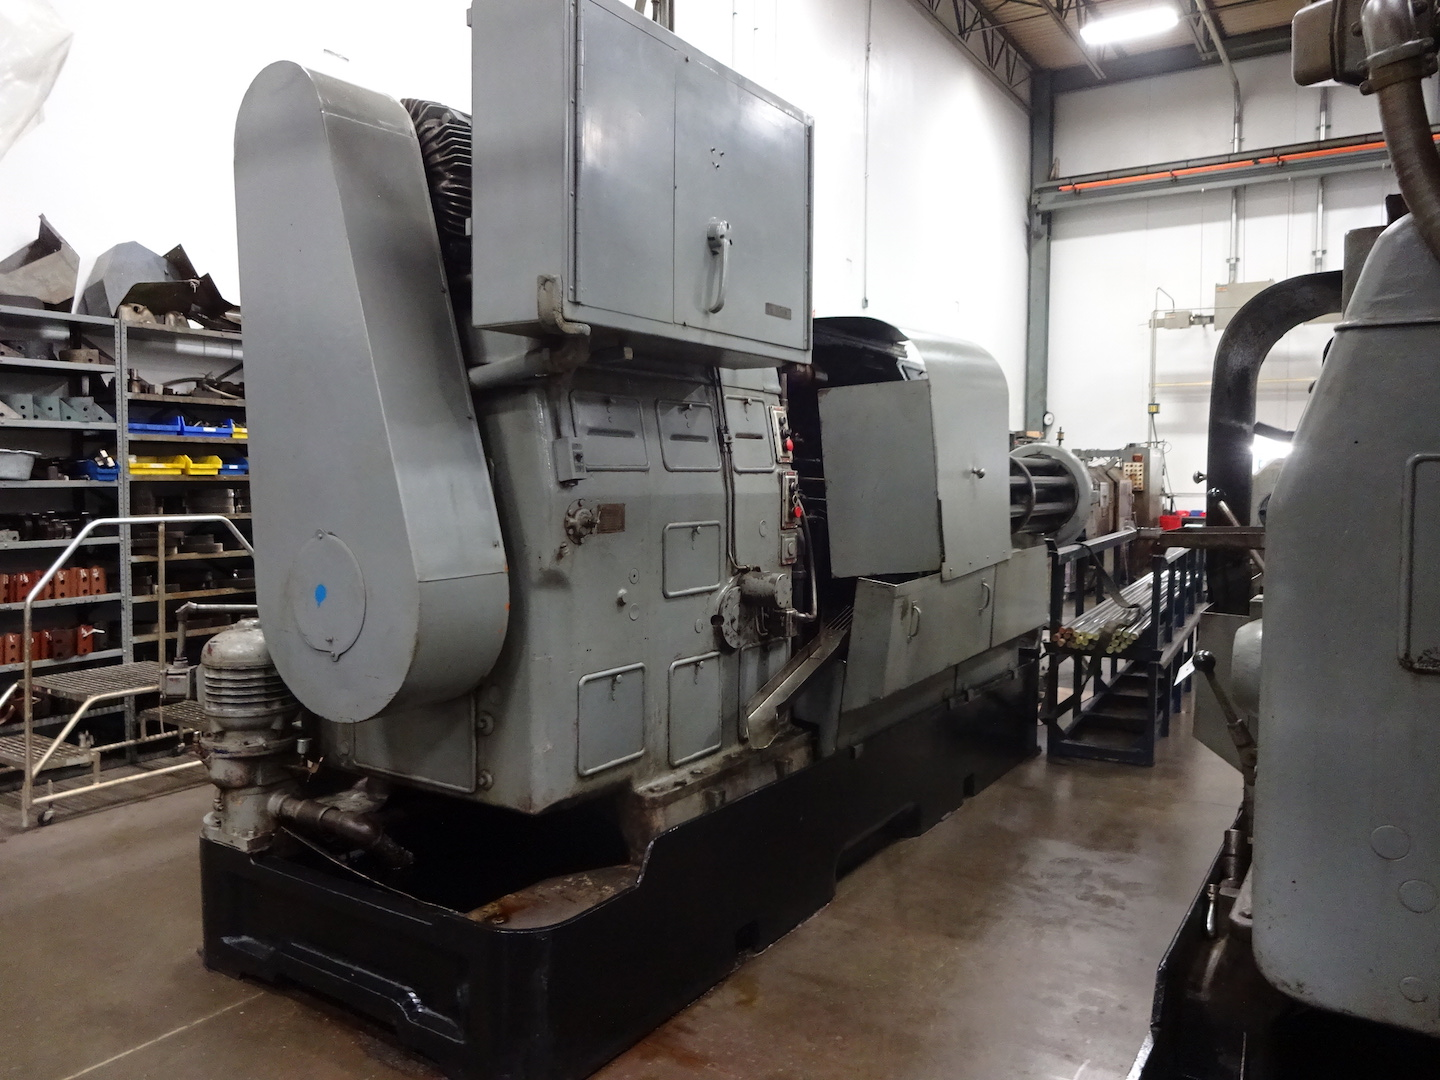 "Lot 4 - ACME-GRIDLEY 2-5/8"" MODEL RB-8 8-SPINDLE AUTOMATIC SCREW MACHINE"